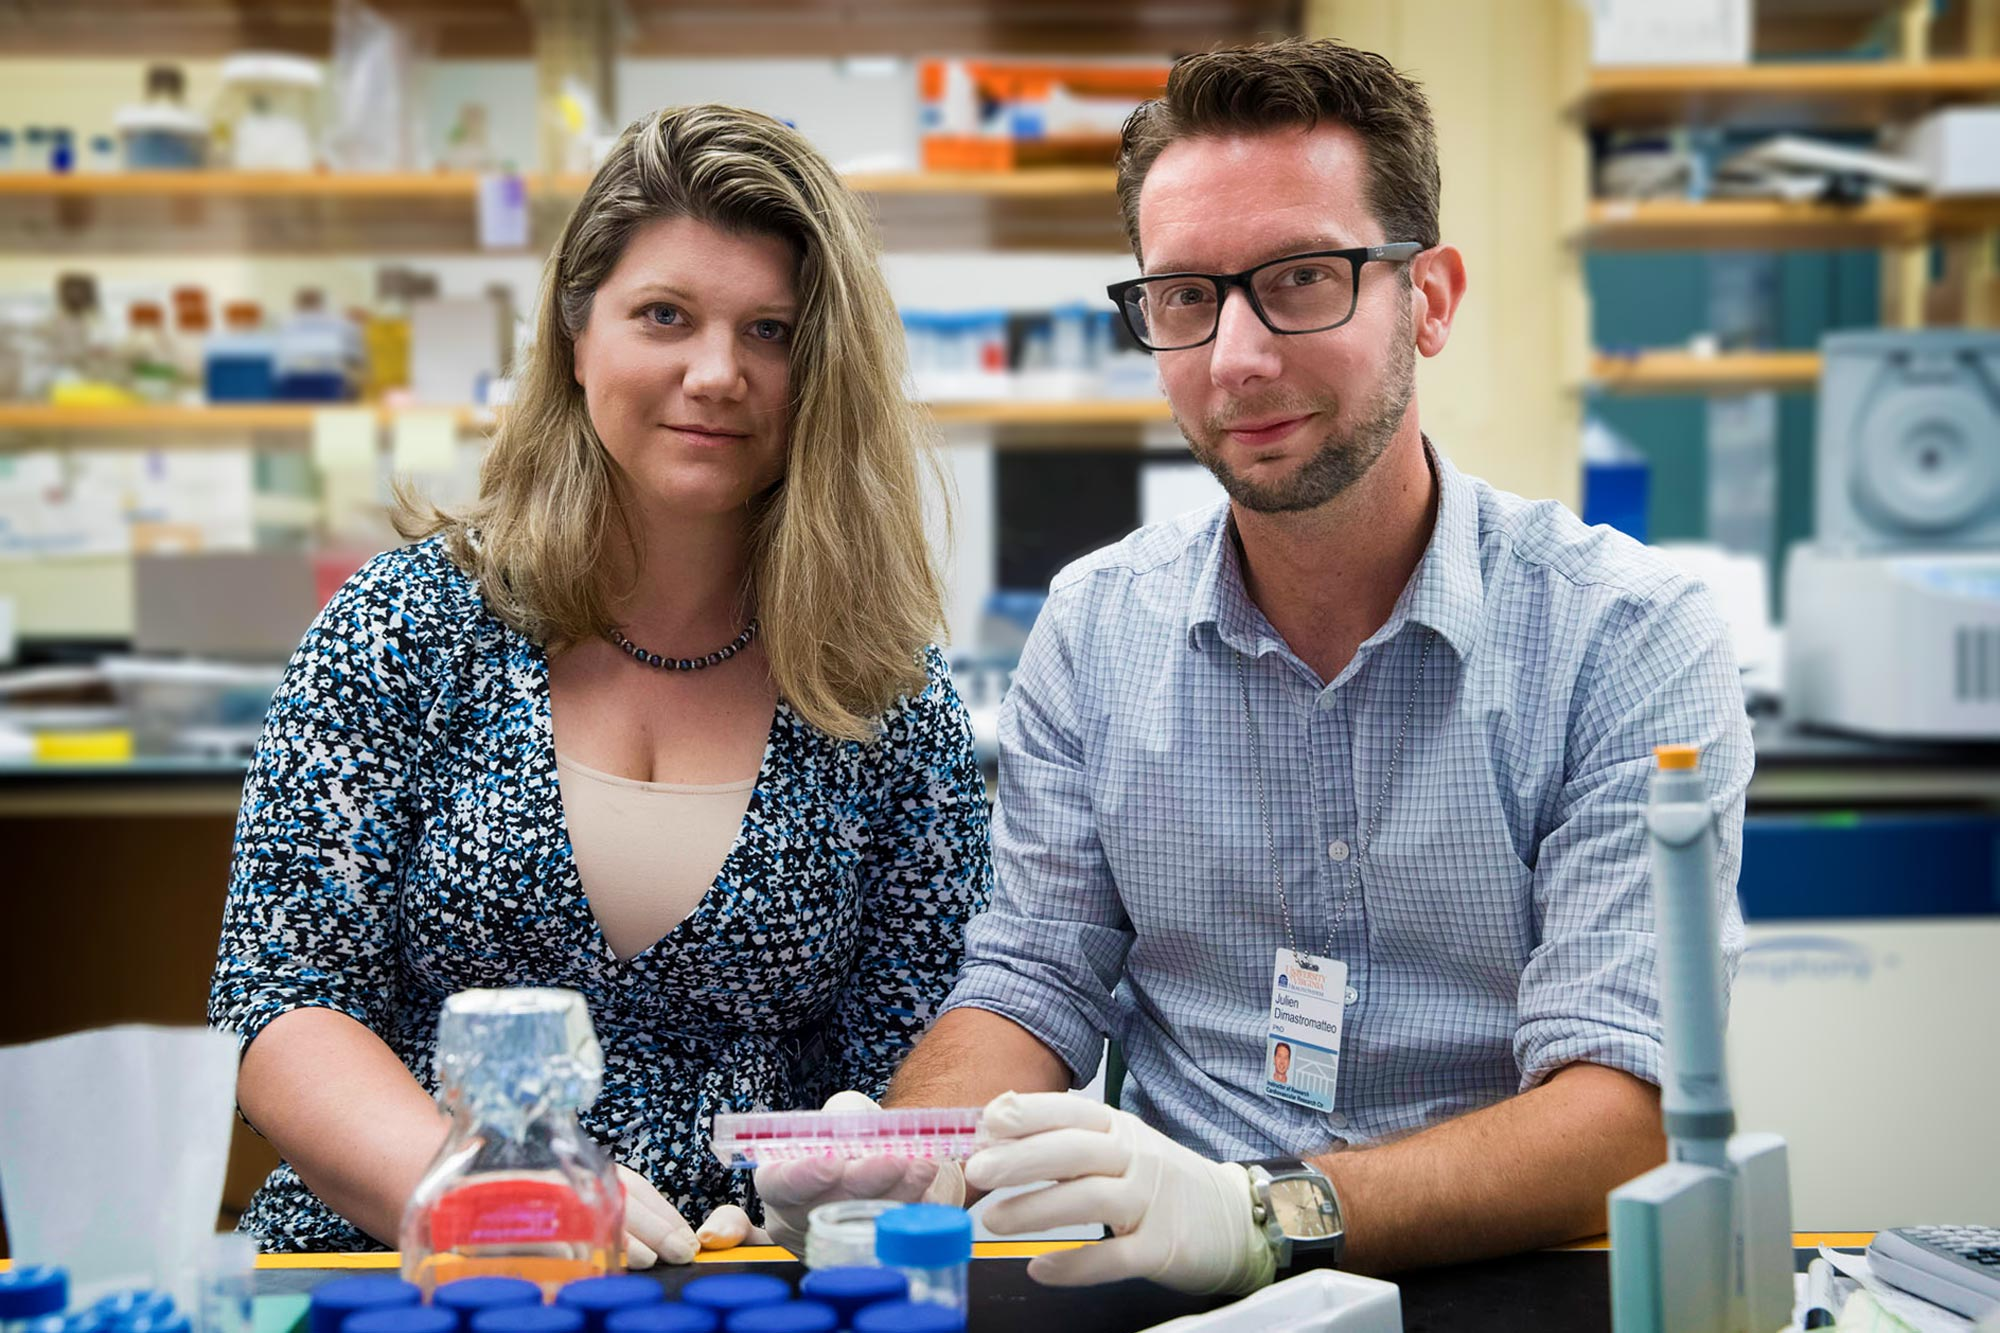 Kimberly Kelly, left, and research associate Julien Dimastromatteo are developing two products for diagnosing and treating plectin-positive cancers.